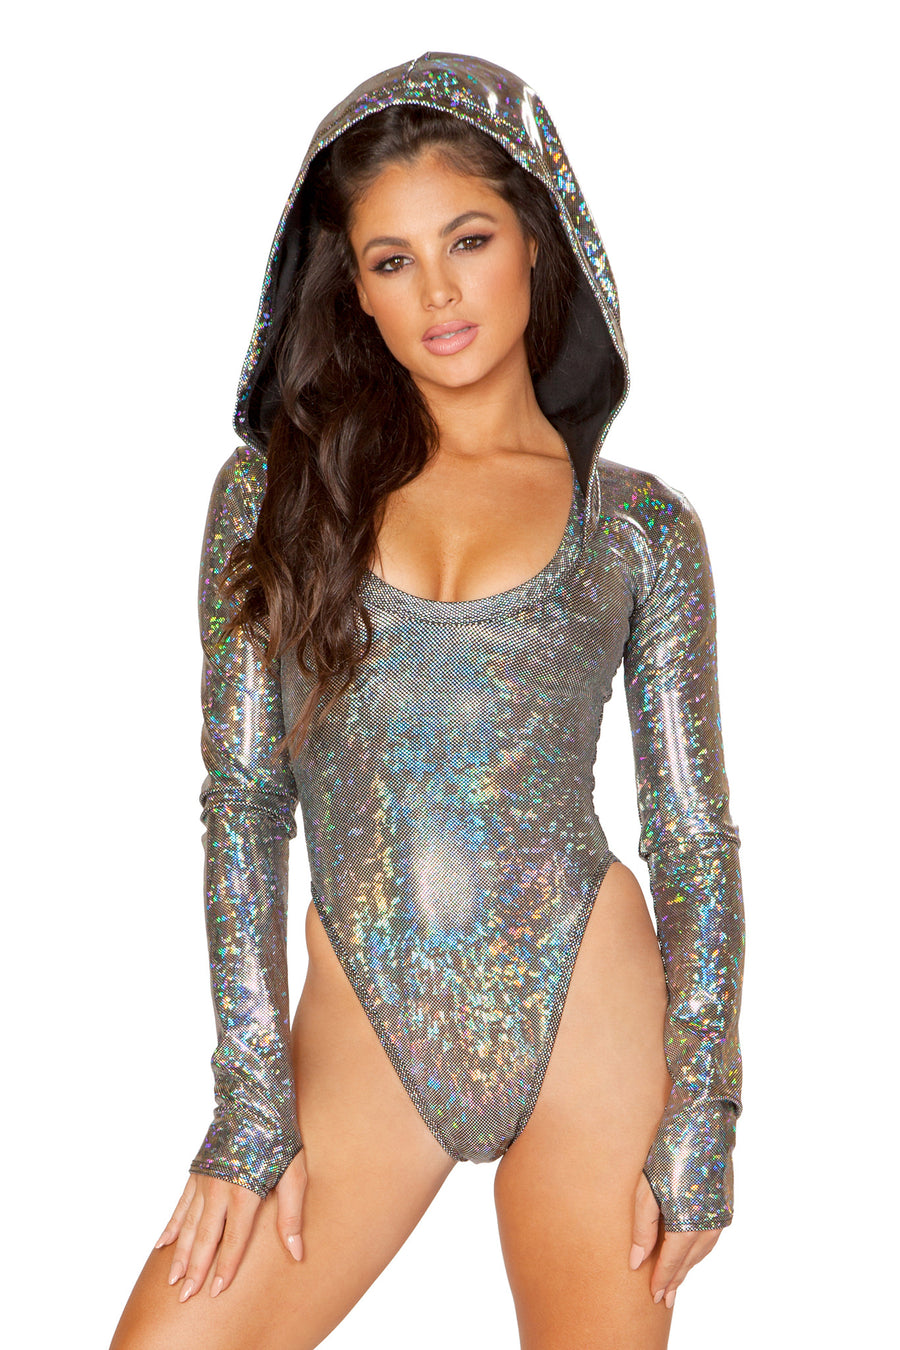 Mirror Hooded Mesh Bodysuit